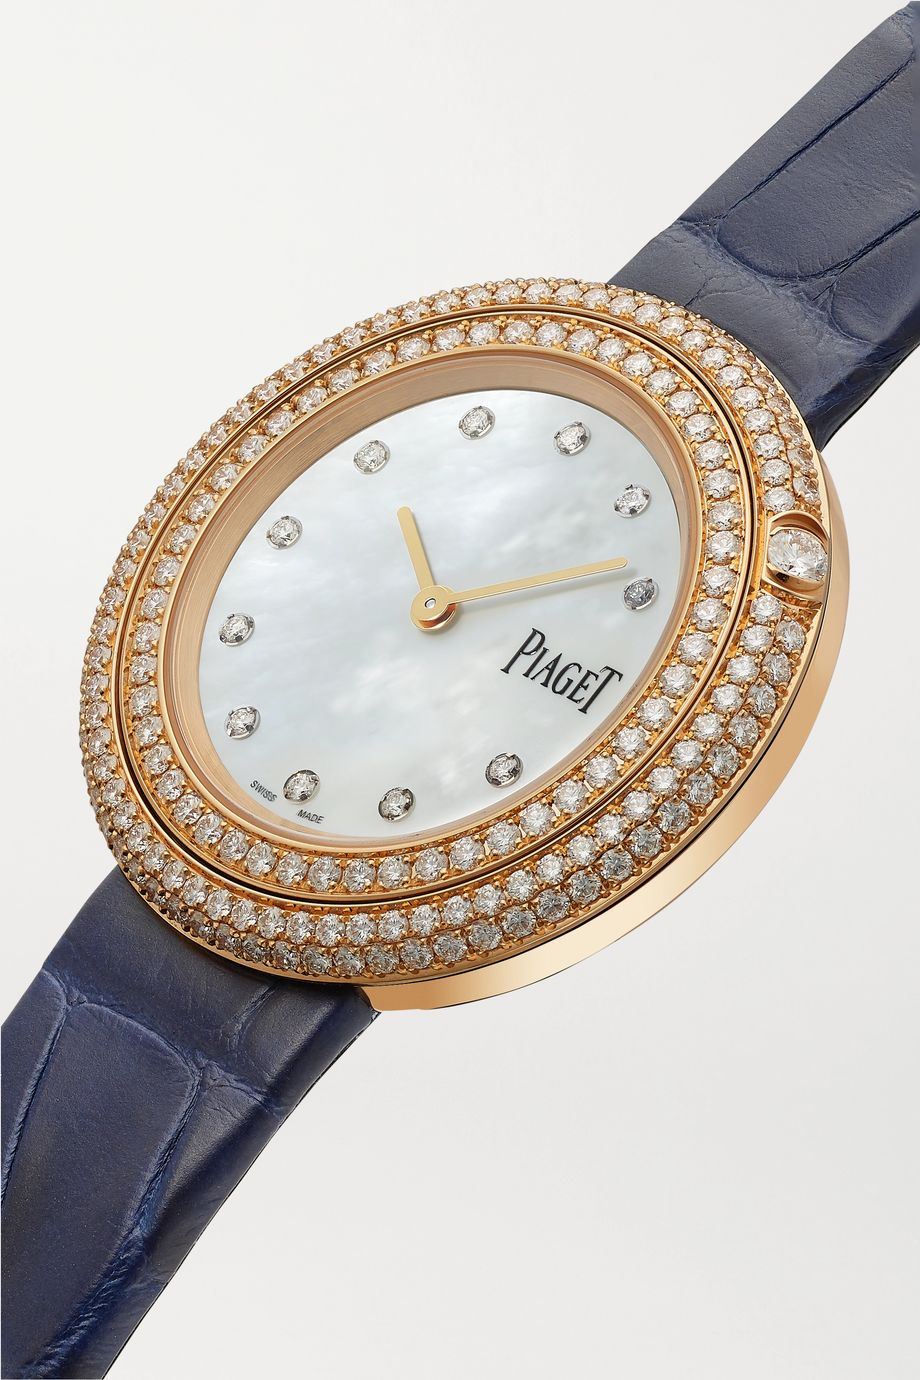 Piaget Possession 34mm 18-karat rose gold, alligator and diamond watch